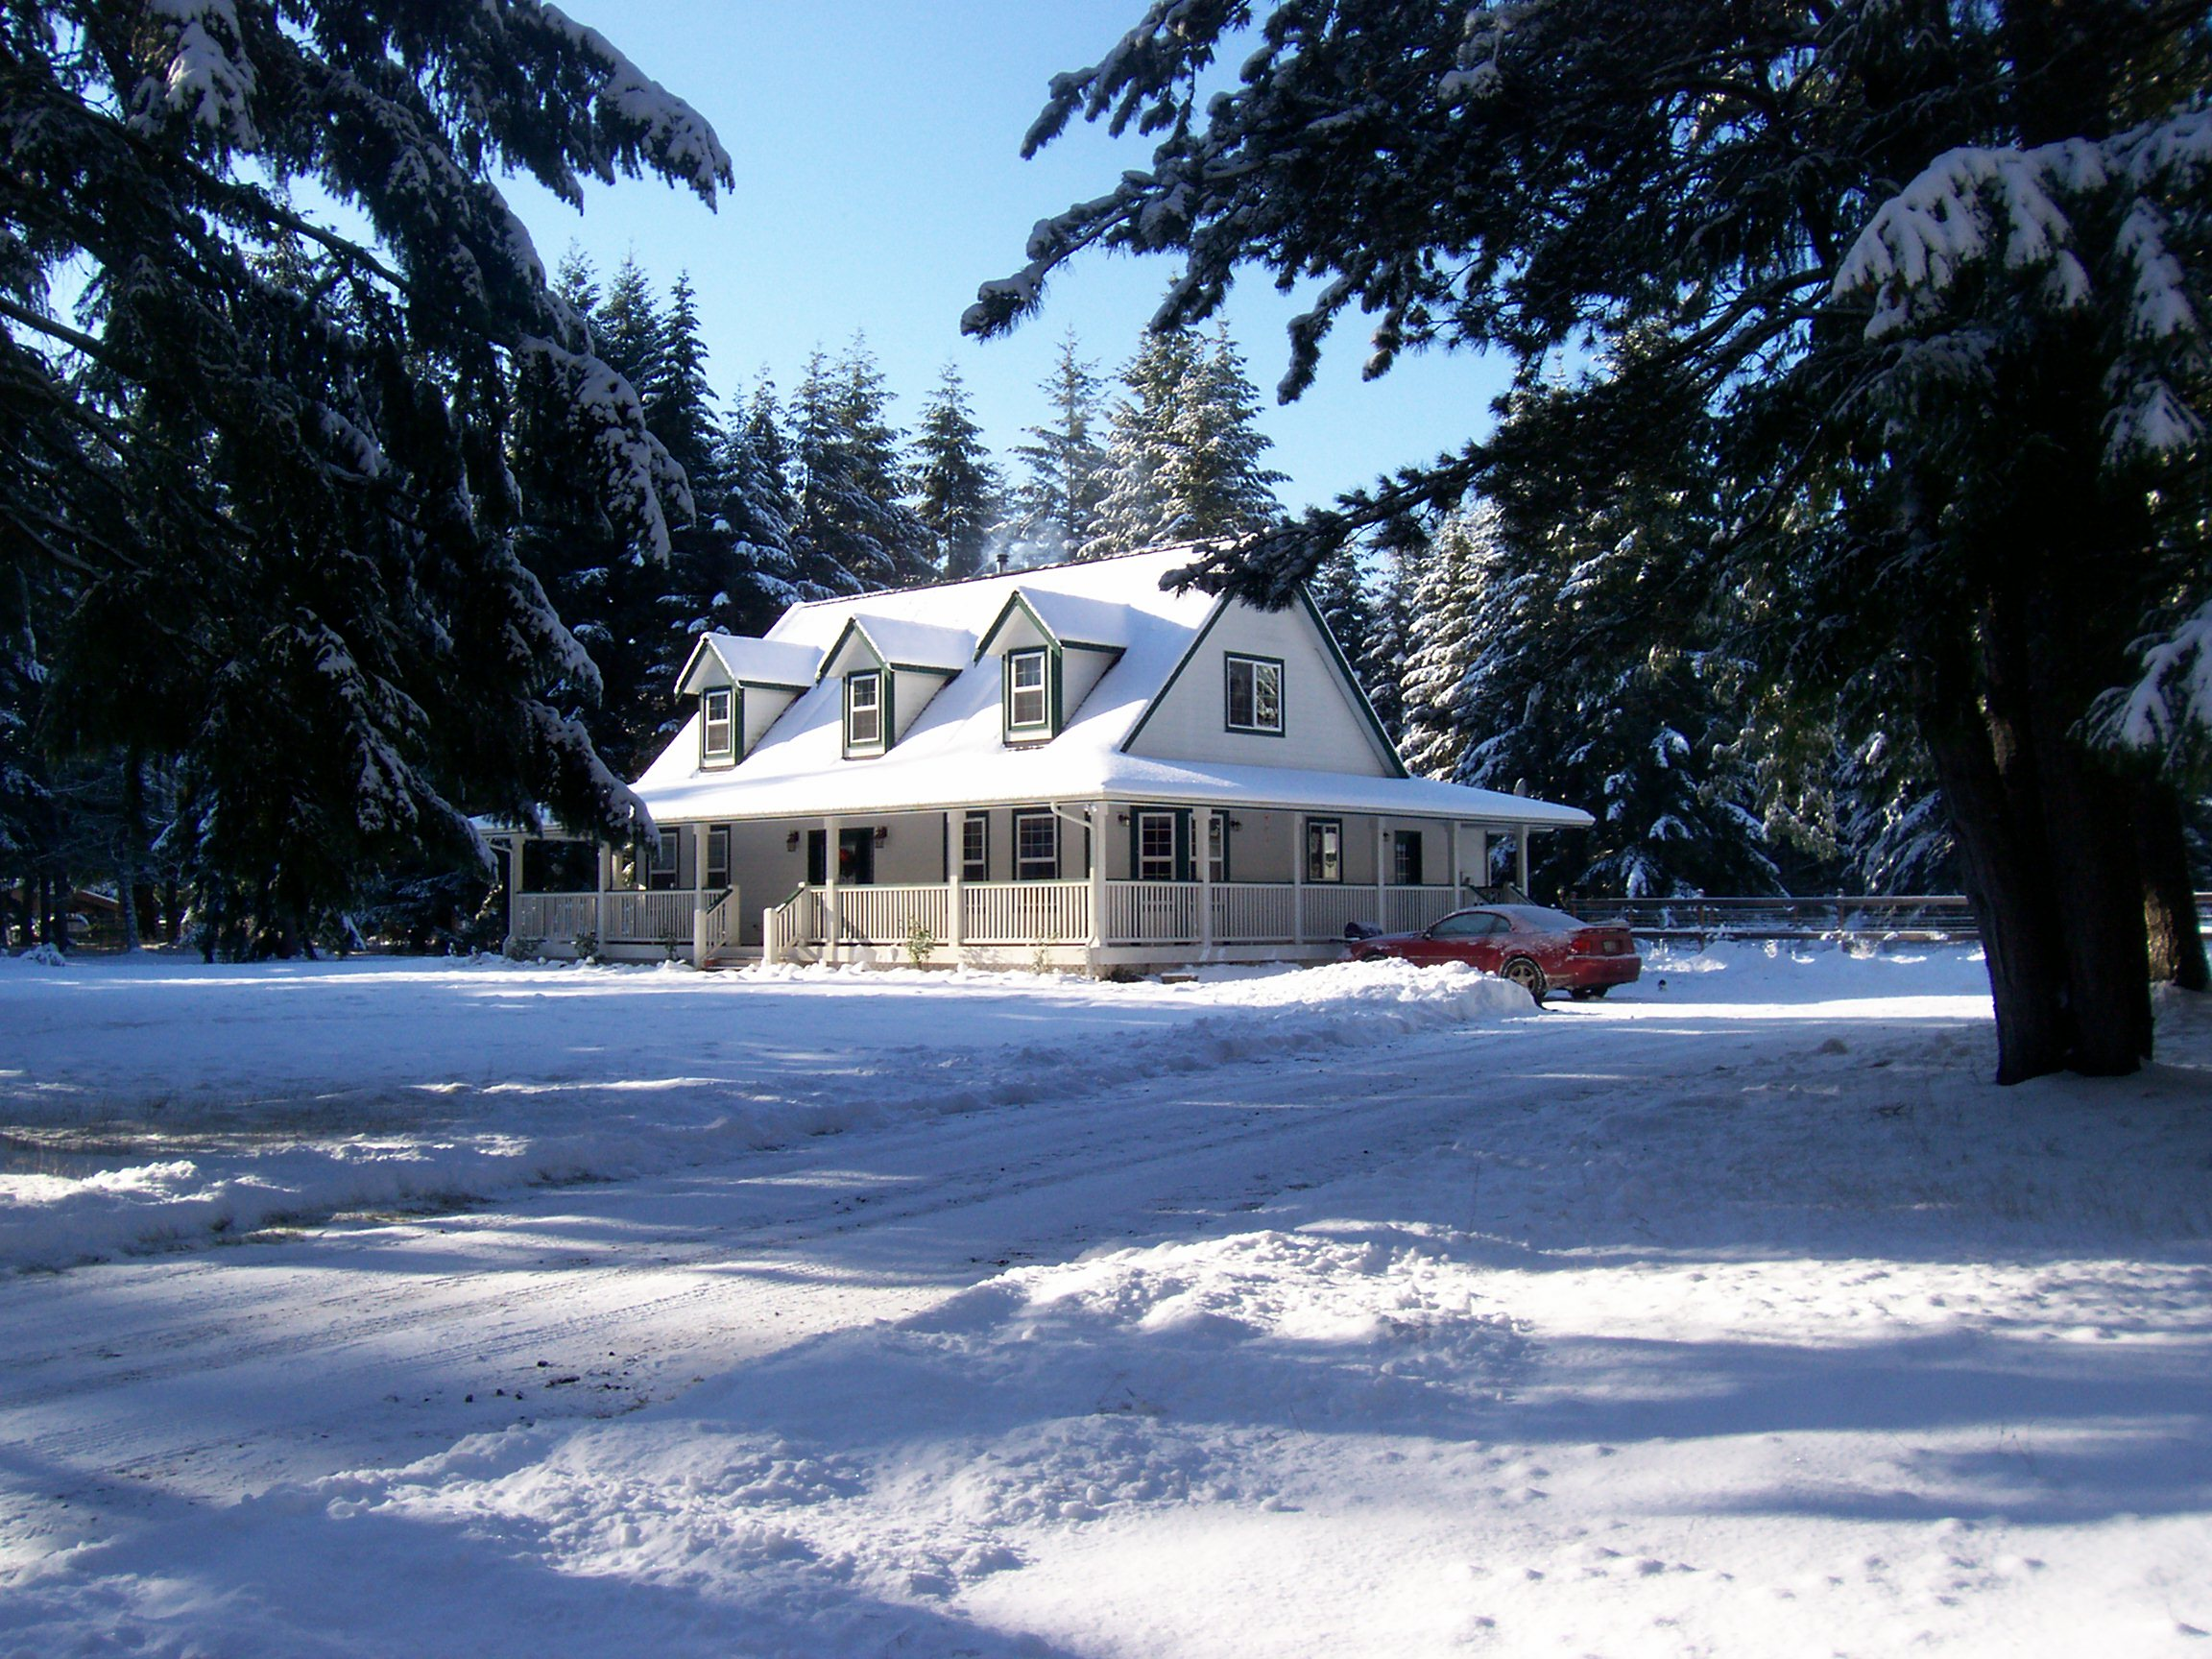 Winter Snow - 2008